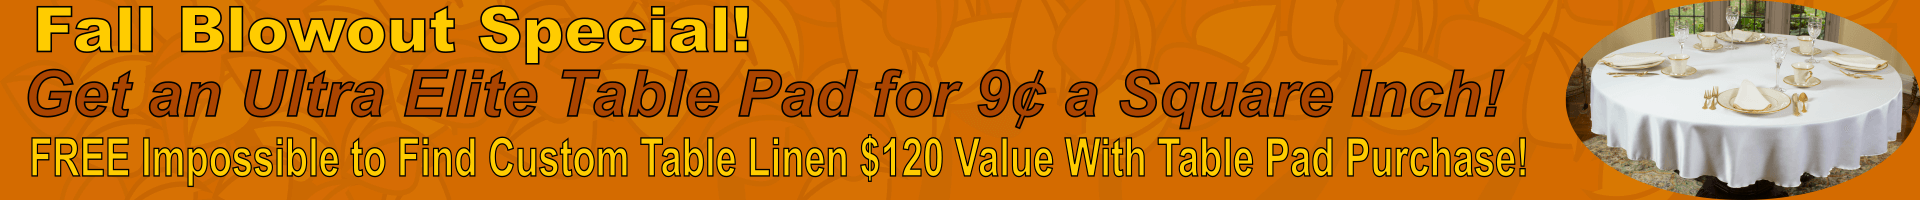 Fall Special - Get An Ultra Elite Table Pad For 9 Cents A Square Inch